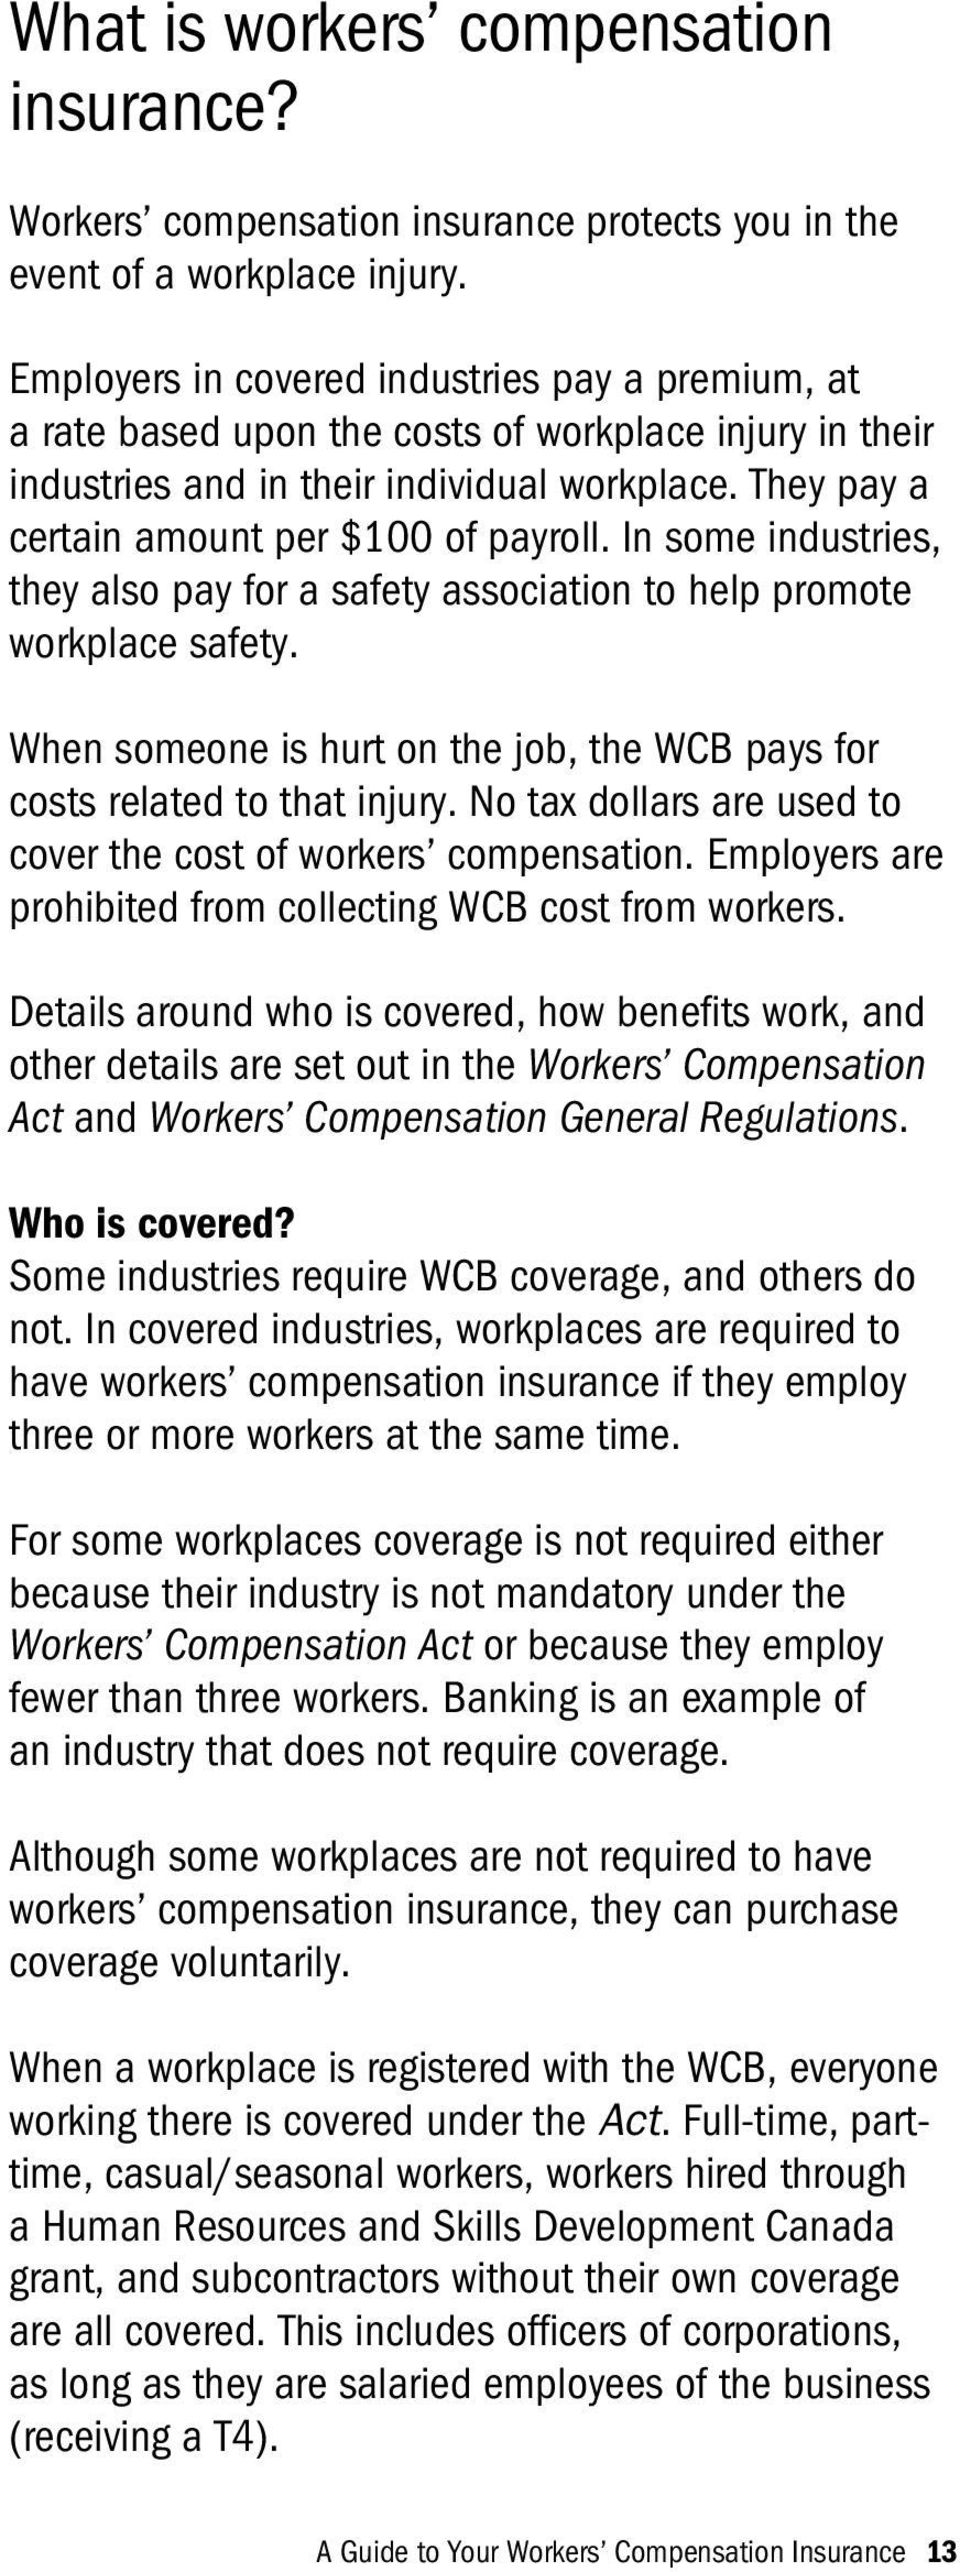 In some industries, they also pay for a safety association to help promote workplace safety. When someone is hurt on the job, the WCB pays for costs related to that injury.